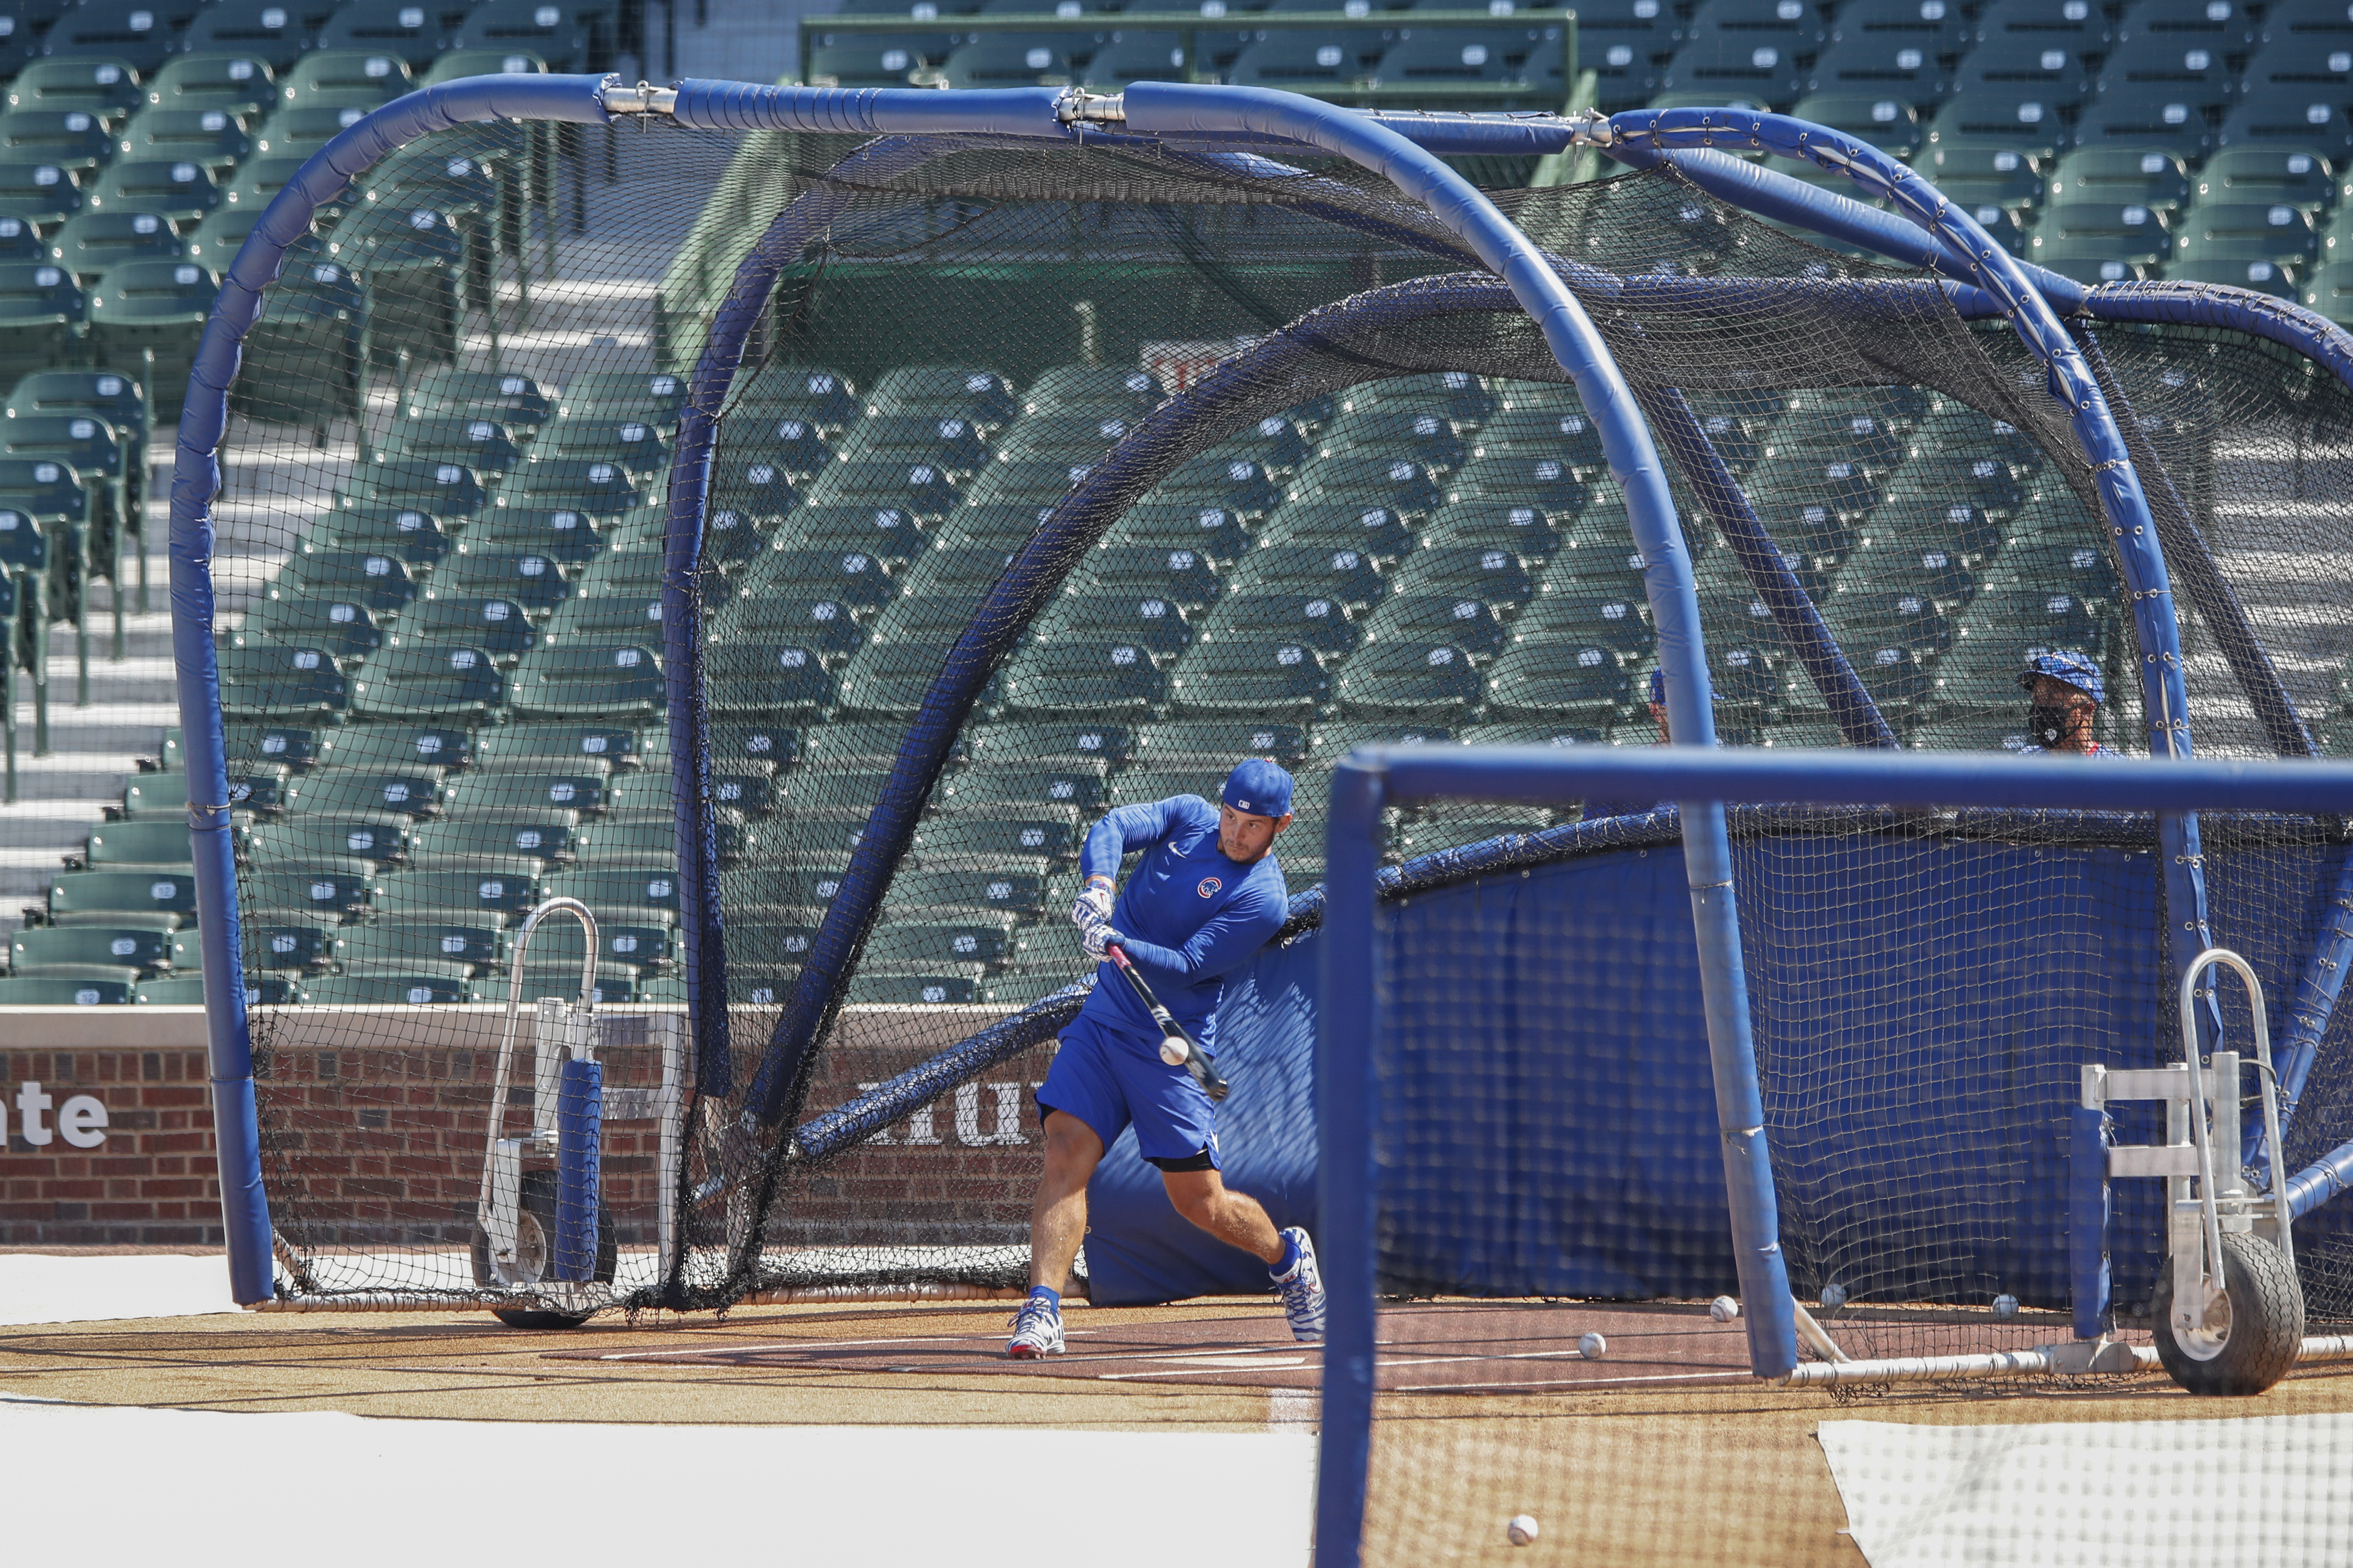 Cubs first baseman Anthony Rizzo bats during baseball practice at Wrigley Field.